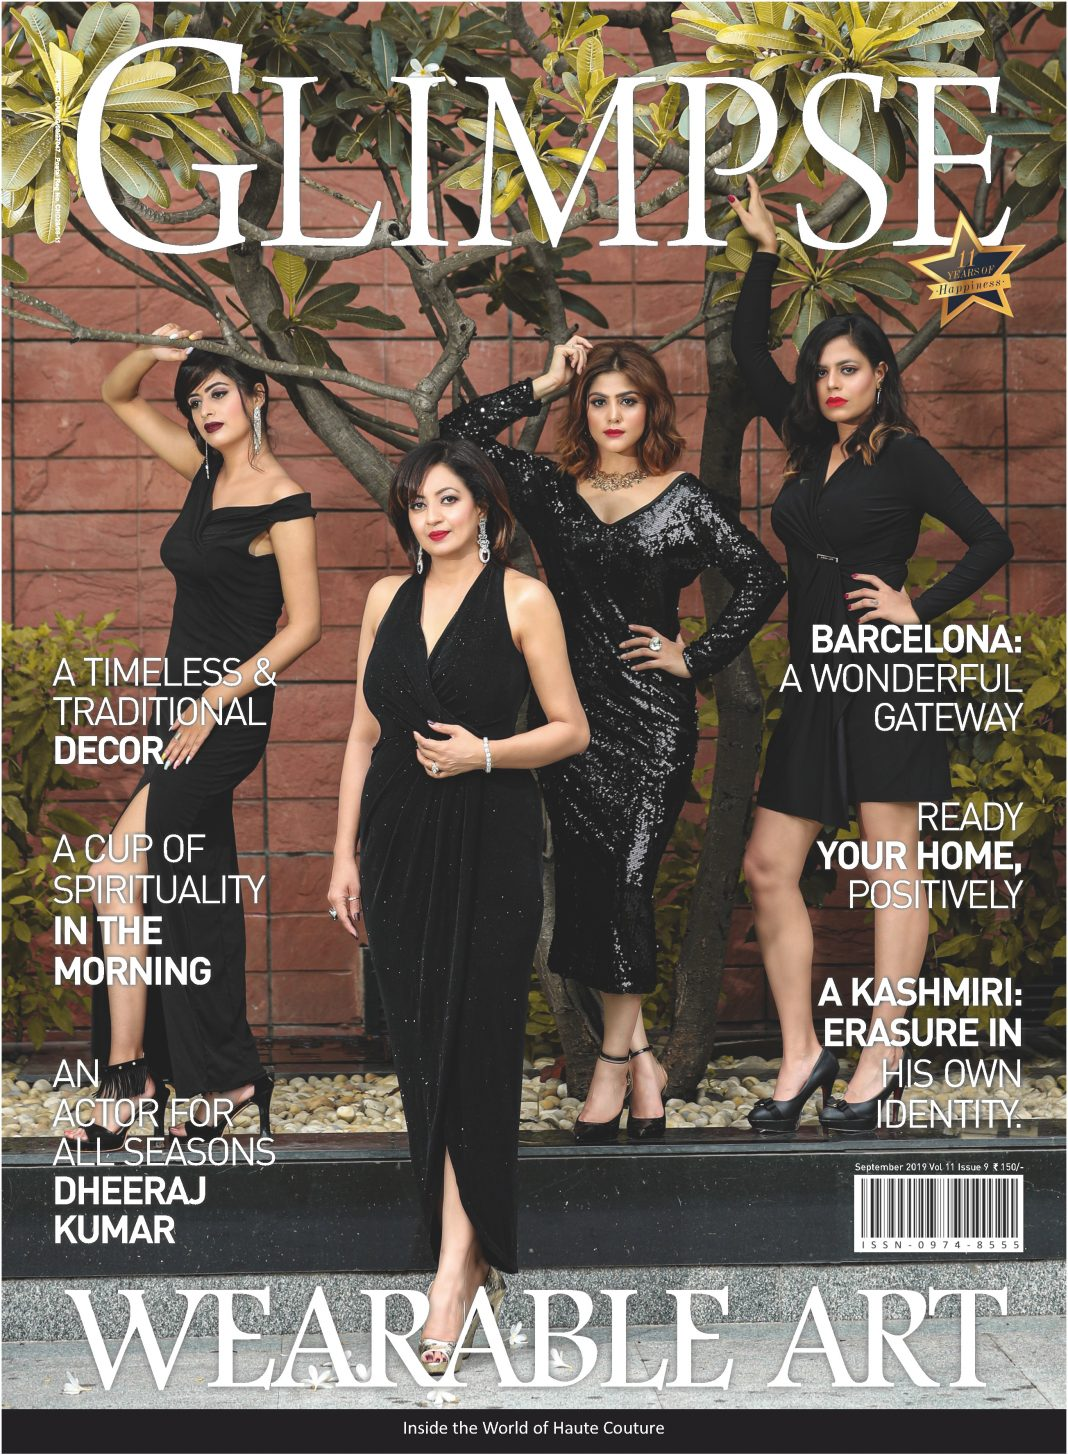 Cover Story Glimpse Magazine